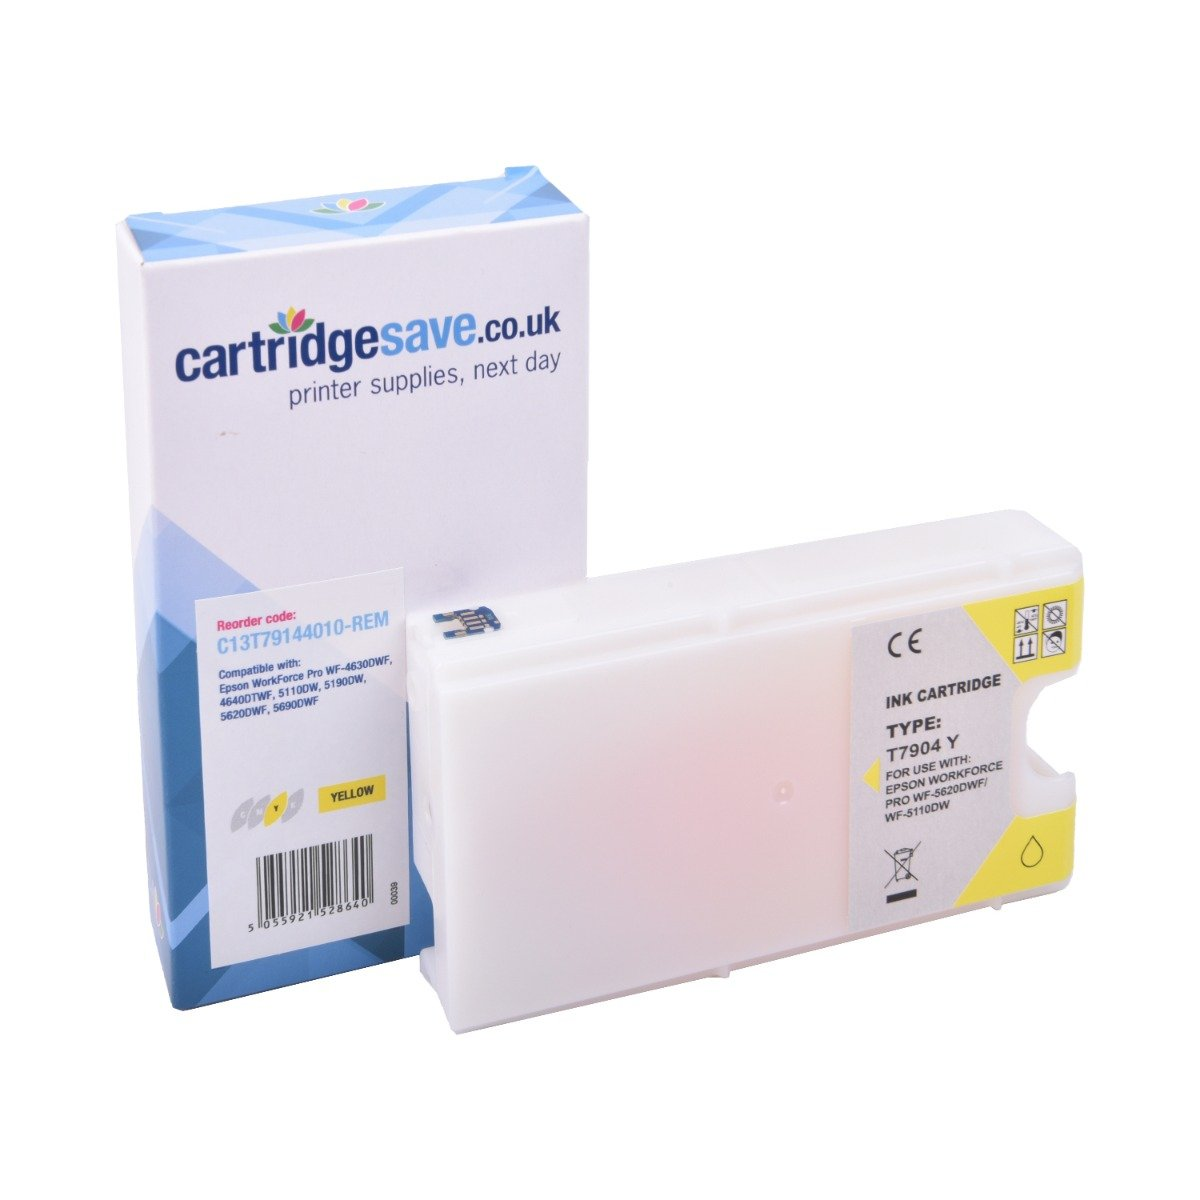 Compatible Yellow Epson 79 Ink Cartridge - (Replaces Epson C13T79144010)